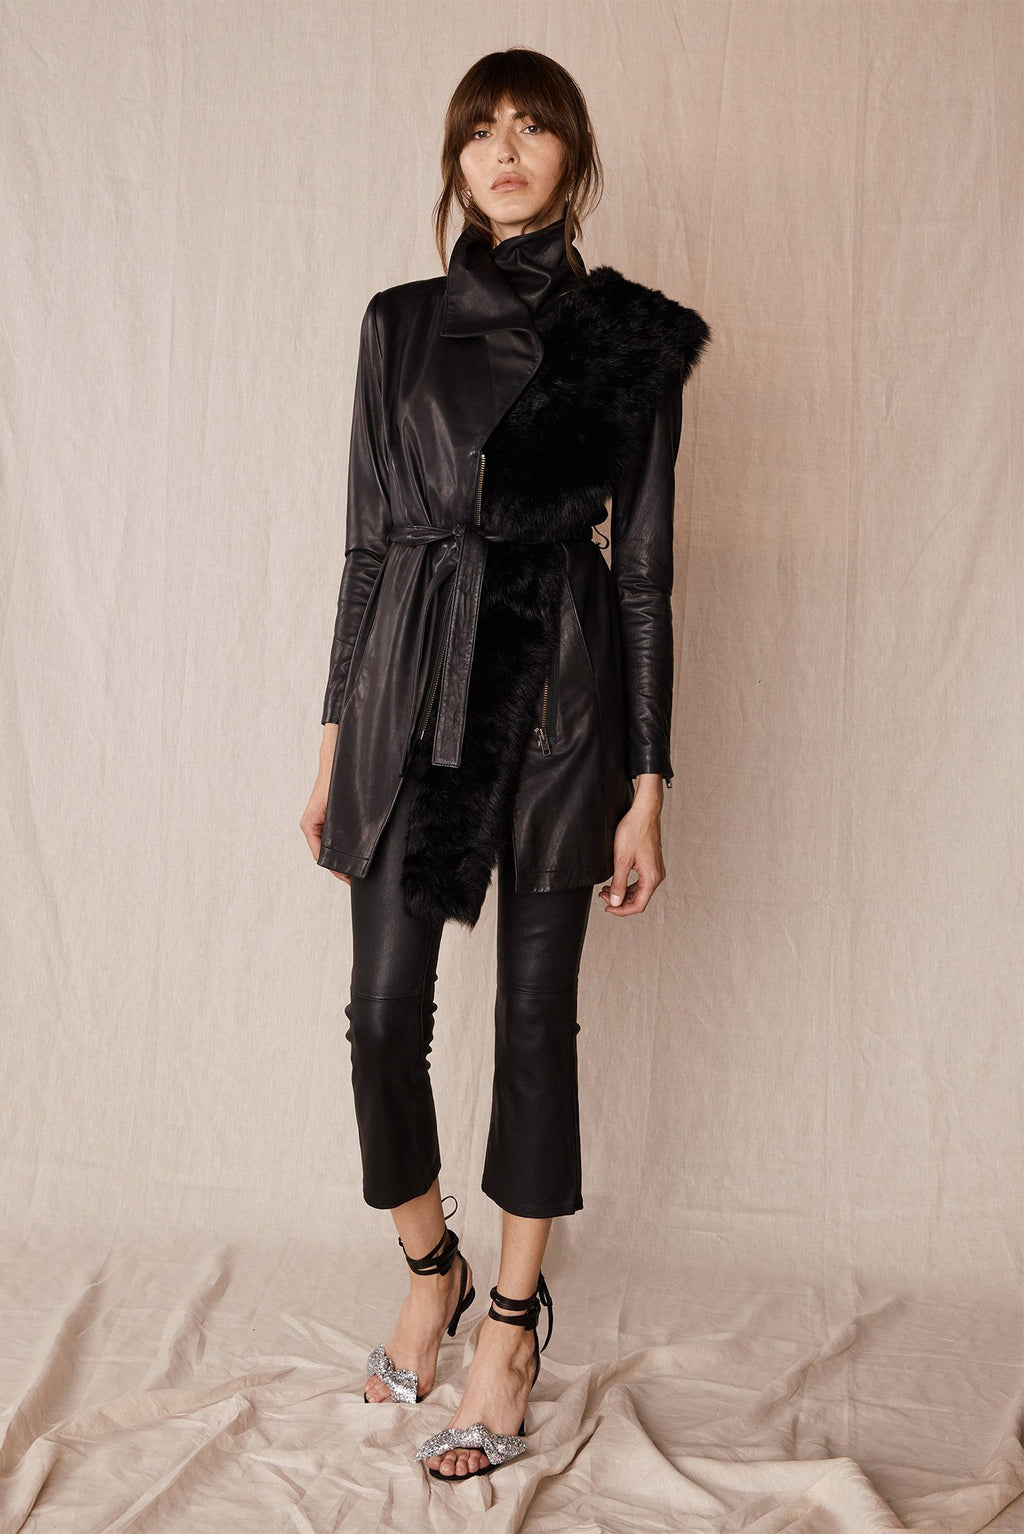 Washington Street Drape Trench Black Leather Jackets Ethical Sustainable Vegan Organic Australian fashion womens clothes